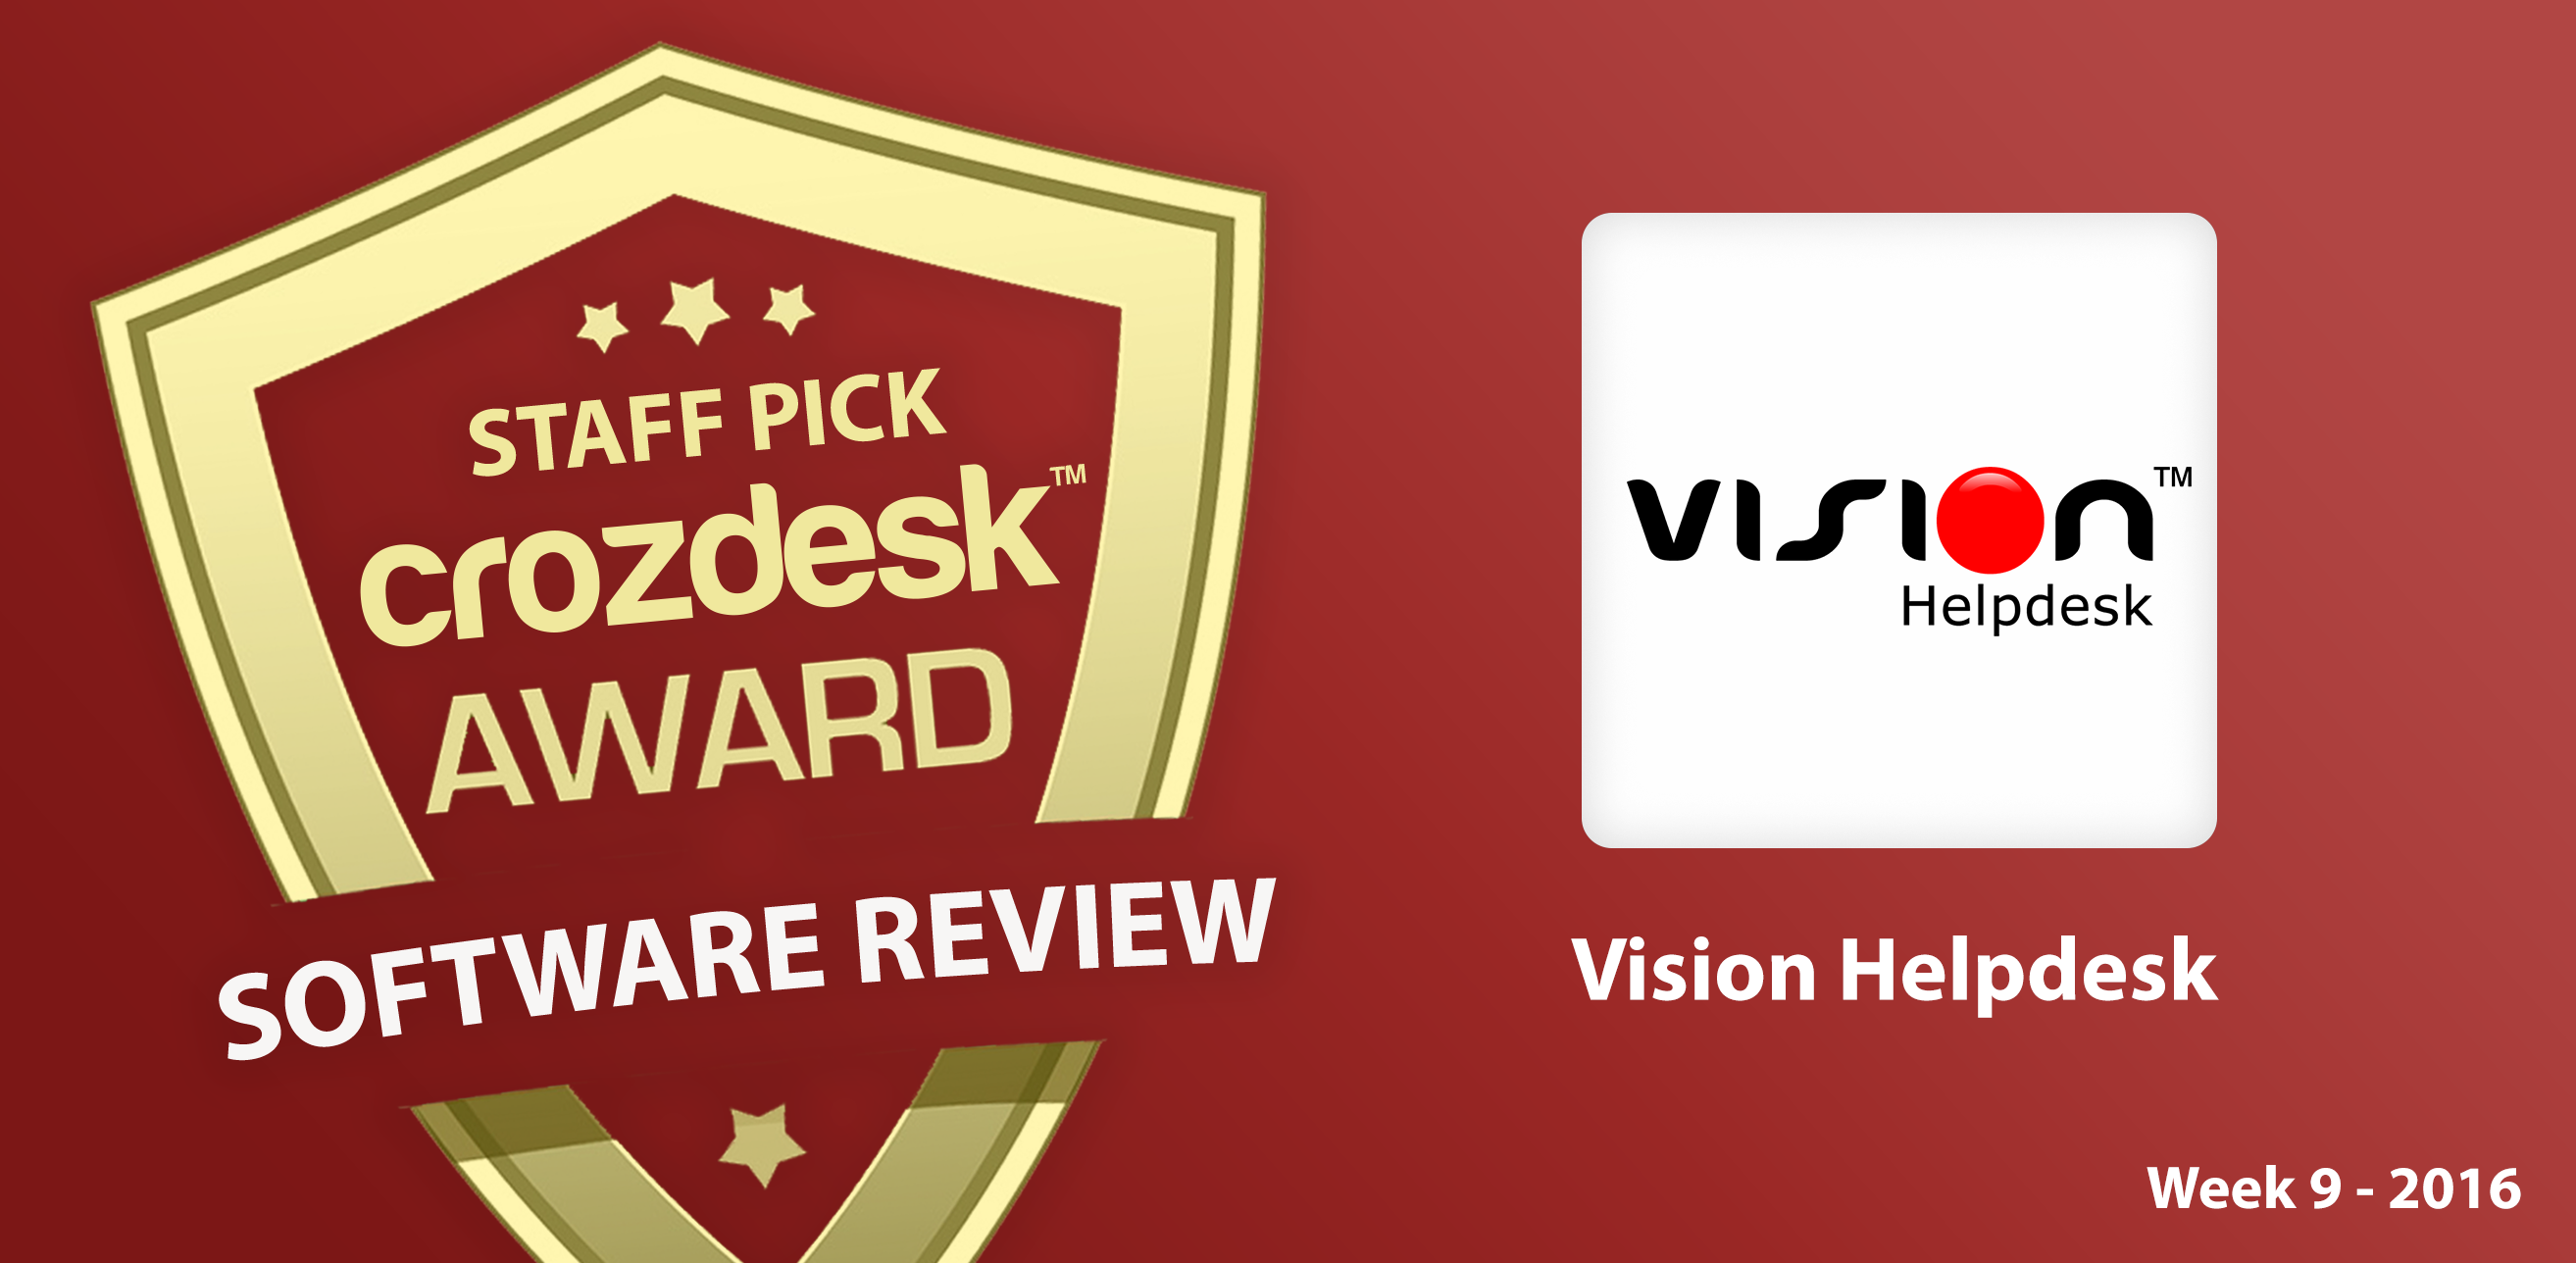 All-in-one customer support software – Vision Helpdesk: Crozdesk App of the Week